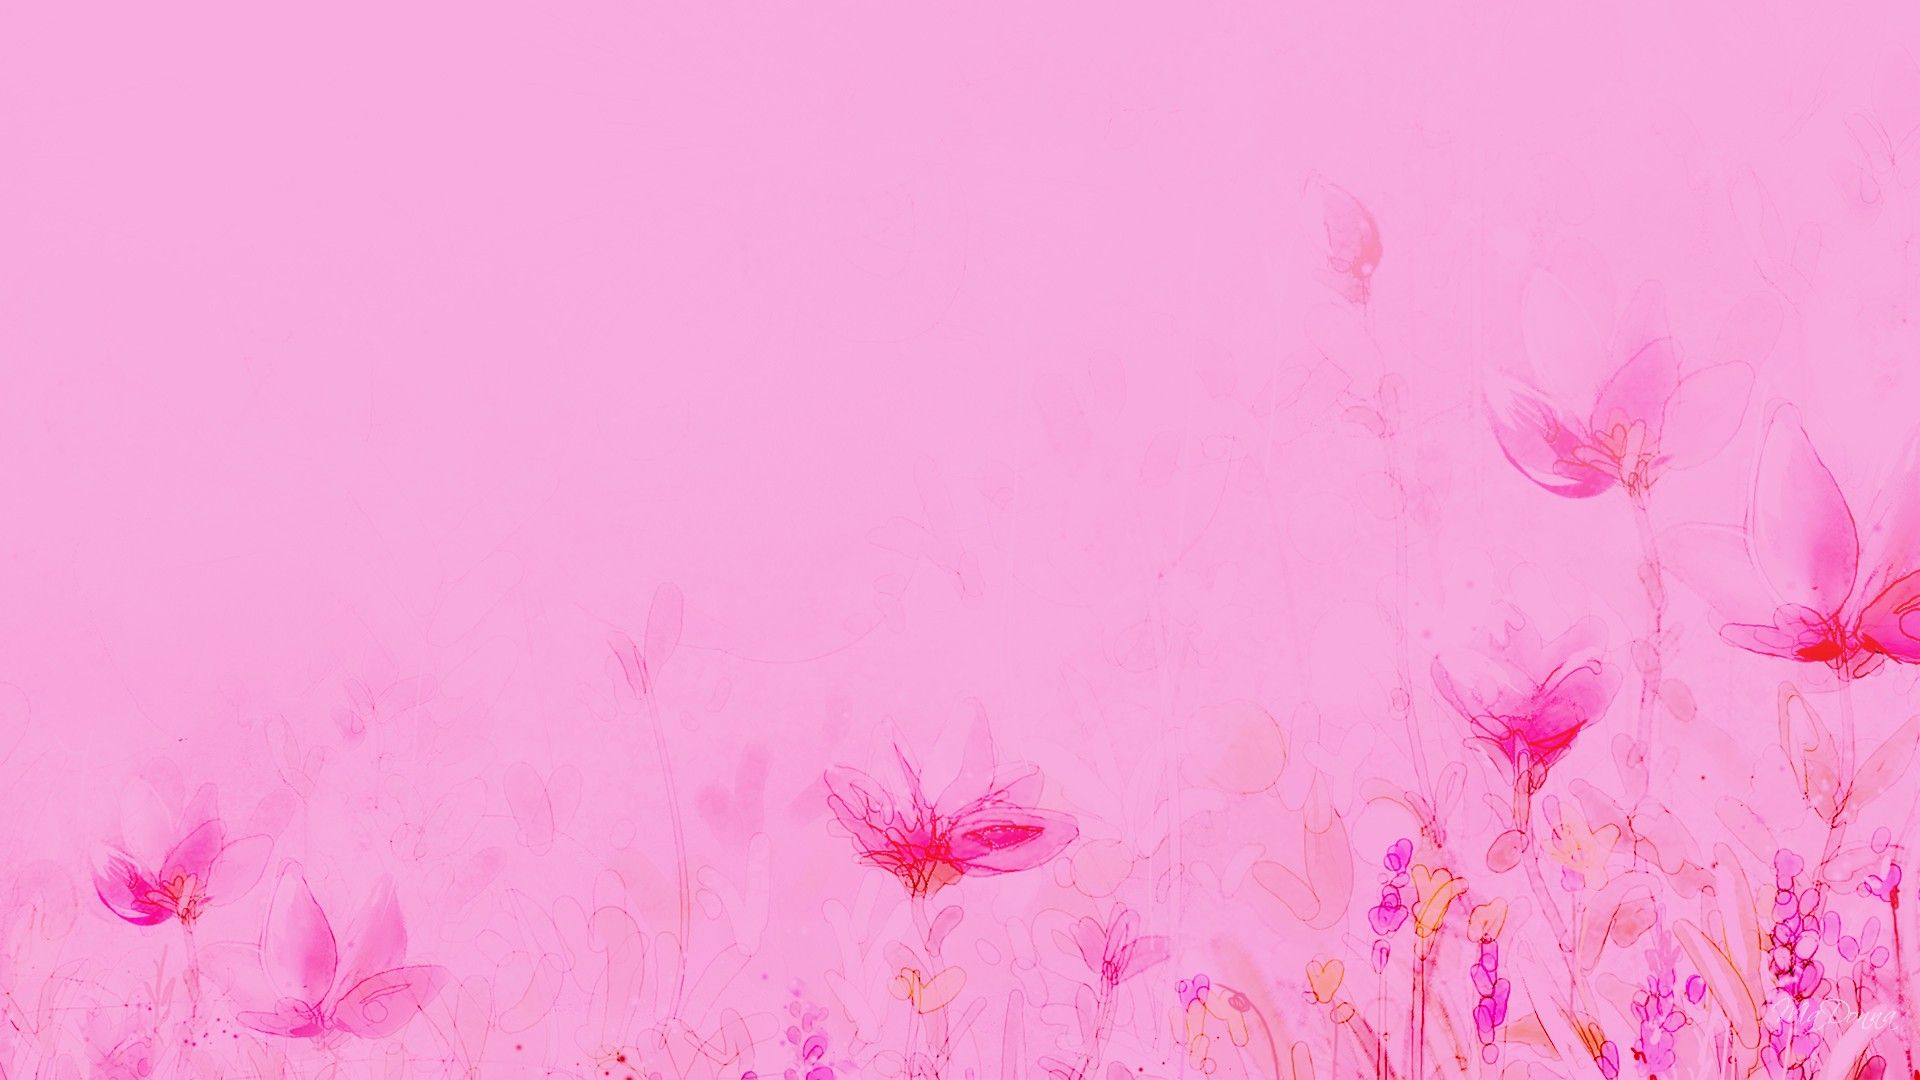 Pink Butterfly Backgrounds Download Design Pink Light